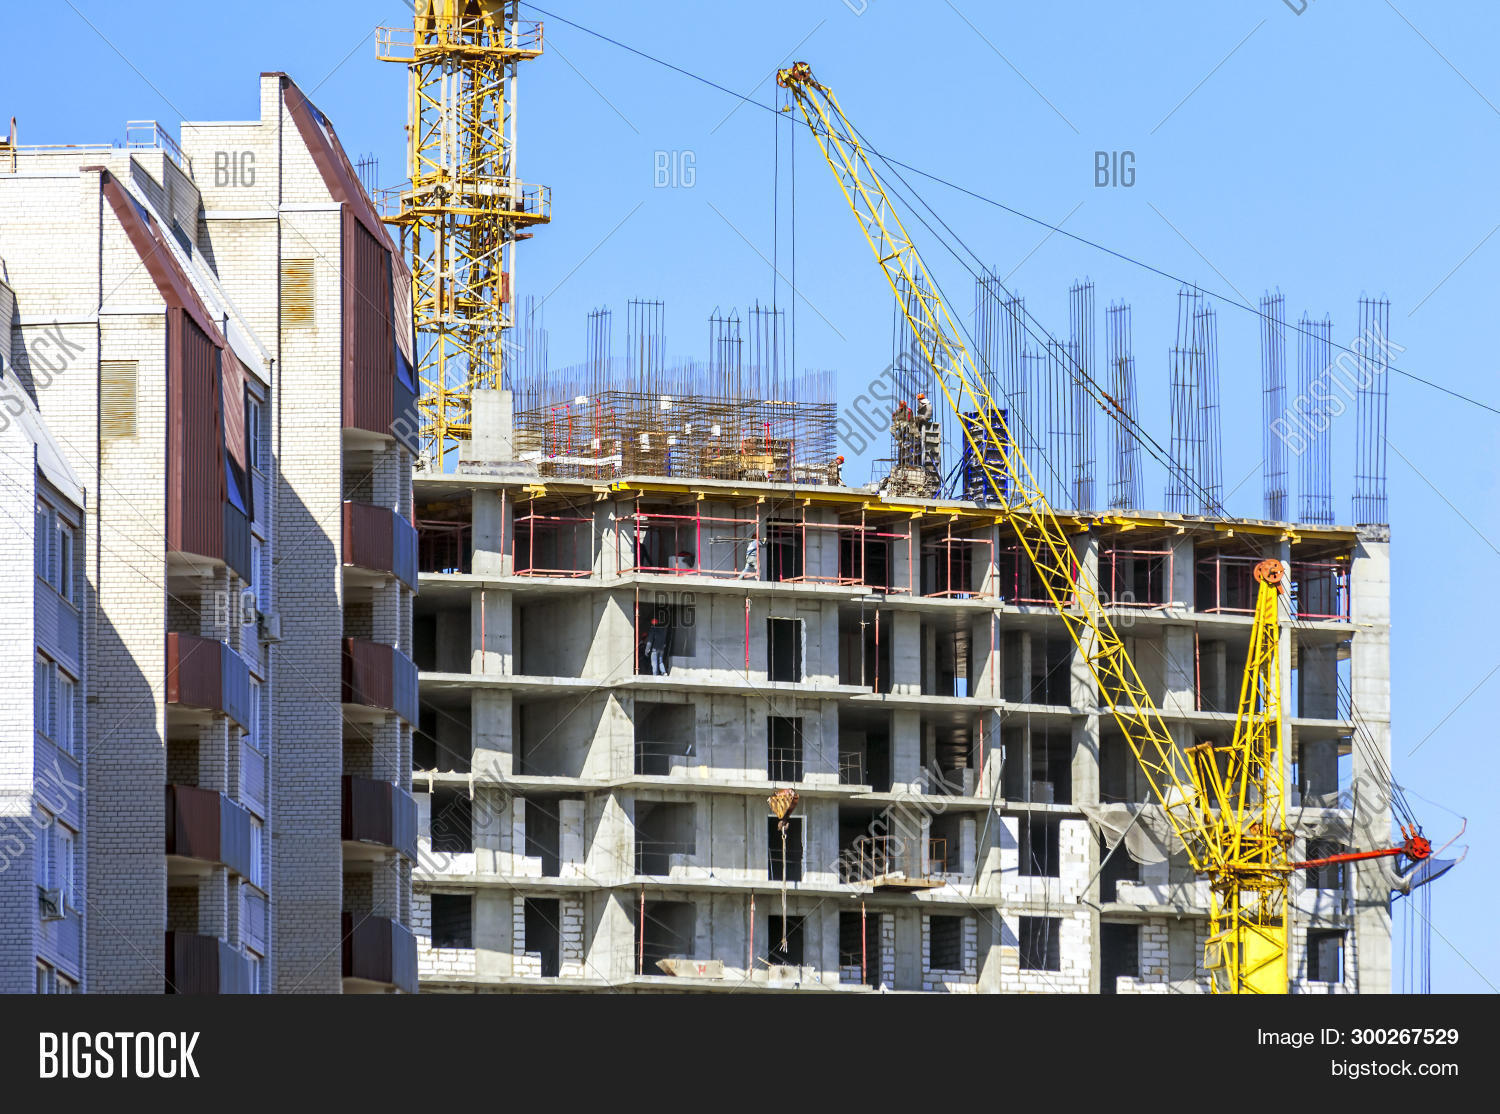 apartment,architecture,balcony,beam,blue,brick,building,casing,cast,cement,city,concrete,condo,construction,crane,deck,decking,developer,development,equipment,estate,flat,high,housing,industrial,industry,mixed,modern,mortgage,multi,project,property,real,rebar,residence,residential,rise,roof,scaffolding,site,sky,steel,storey,tall,tower,unfinished,urban,window,work,yellow